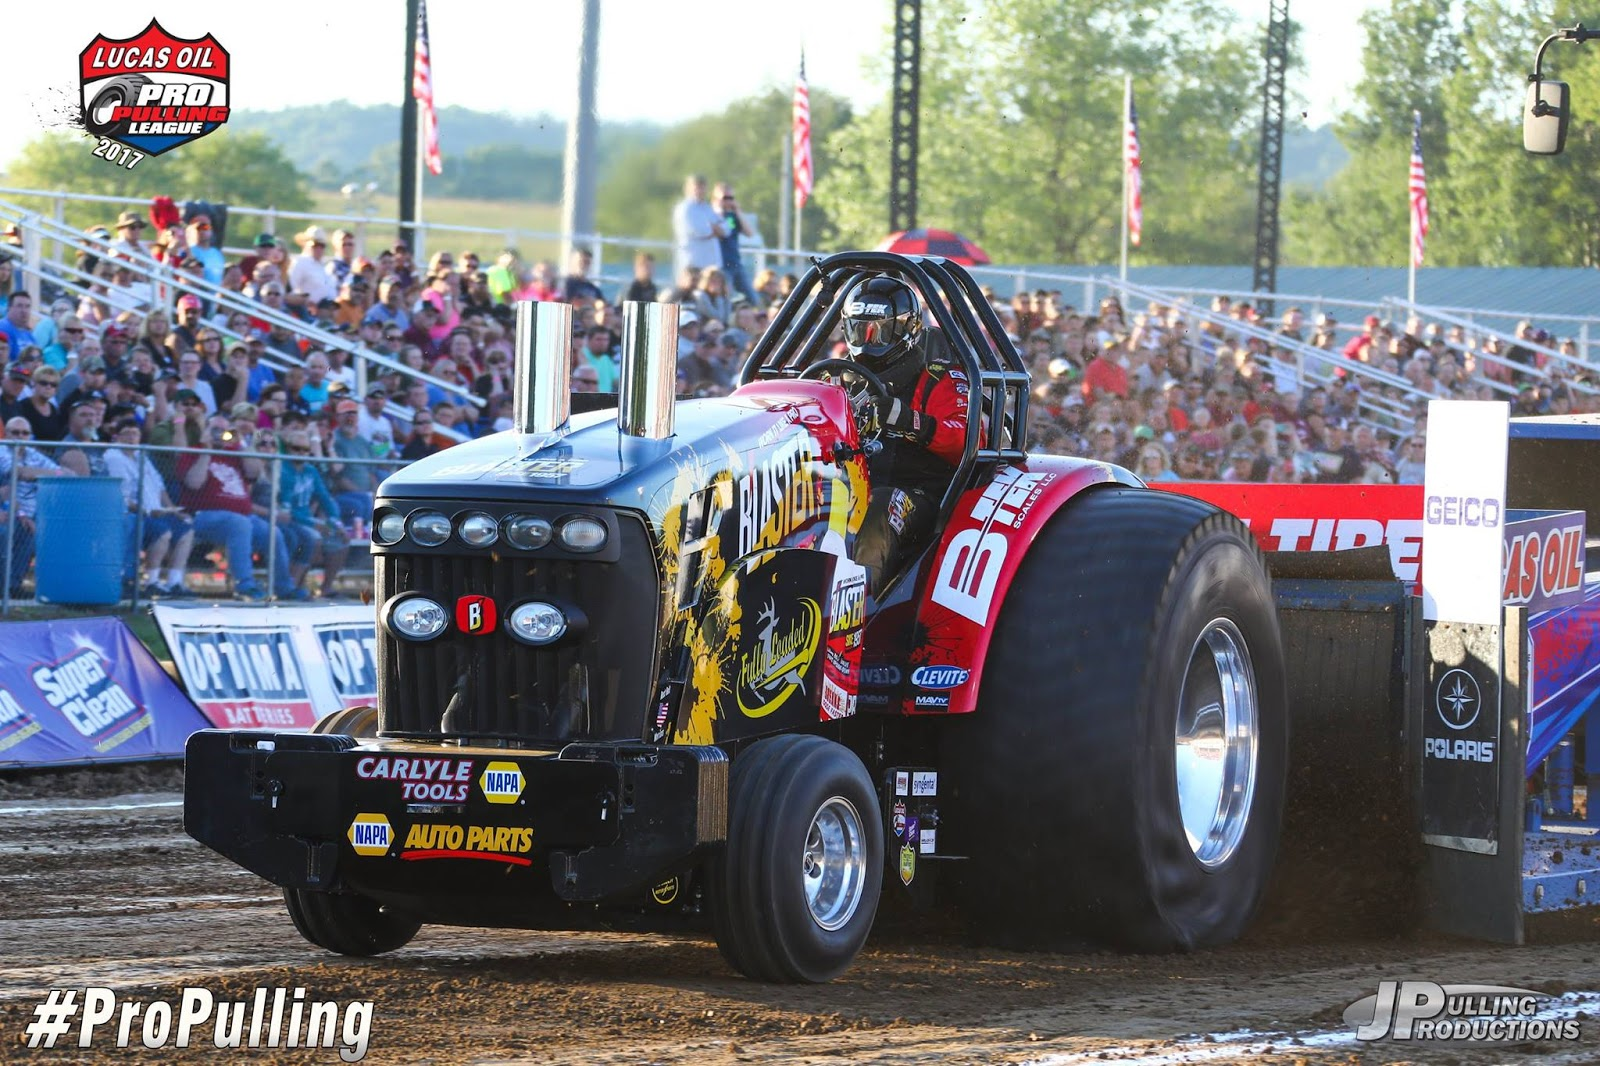 Super Stock Tractor Pulling Engines : Tractor pulling news pullingworld lucas oil pro